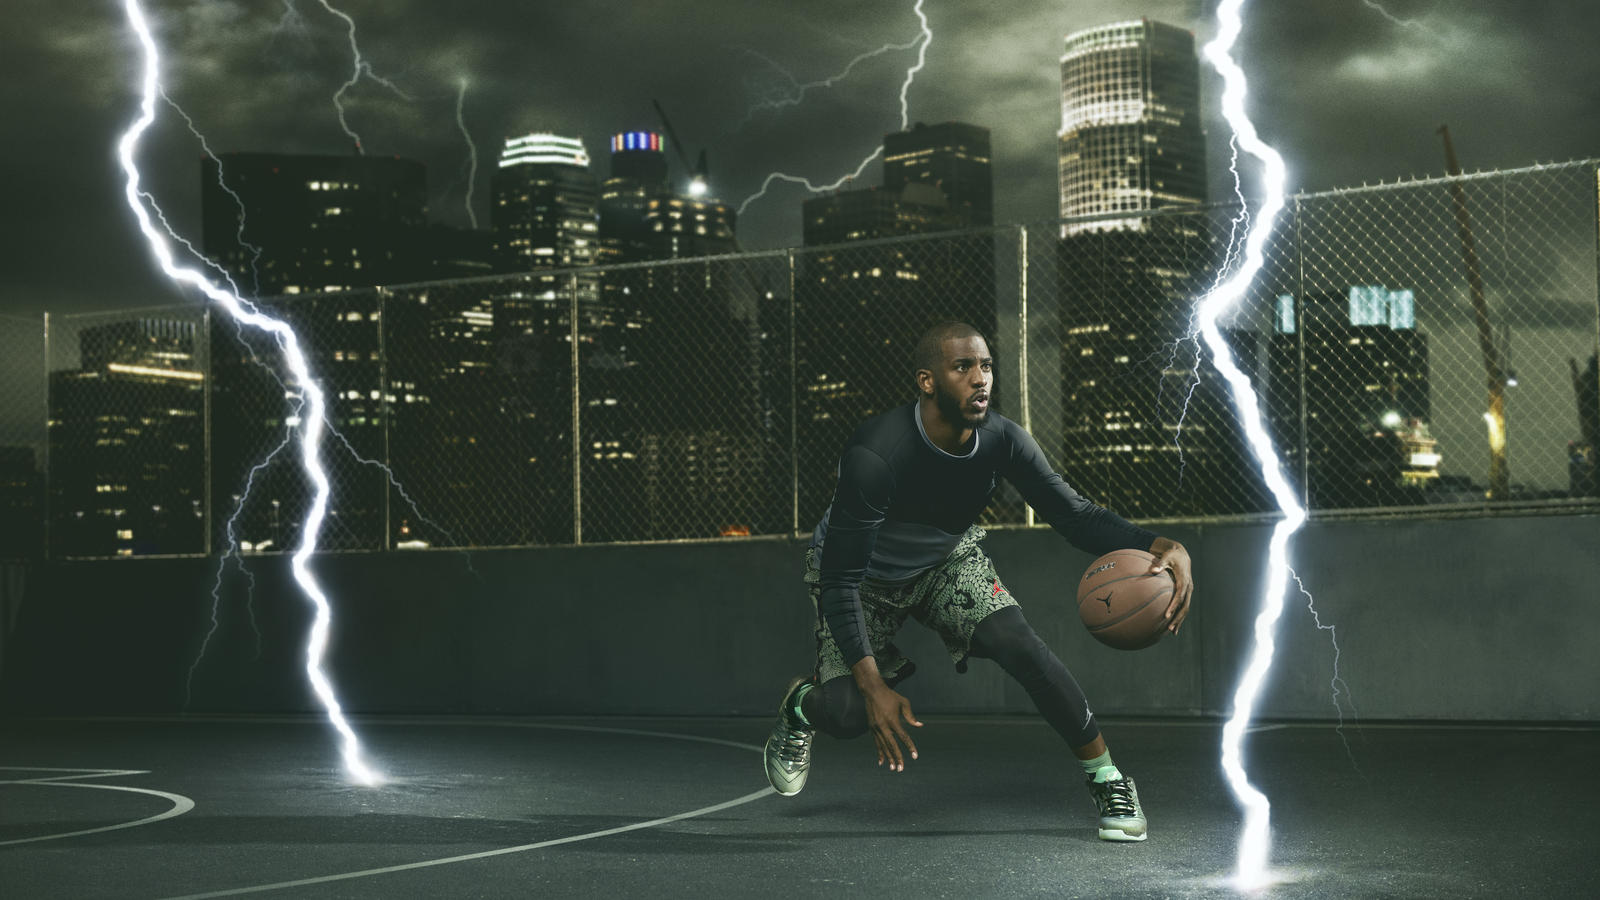 Chris Paul in the Jordan CP3.IX Emerald